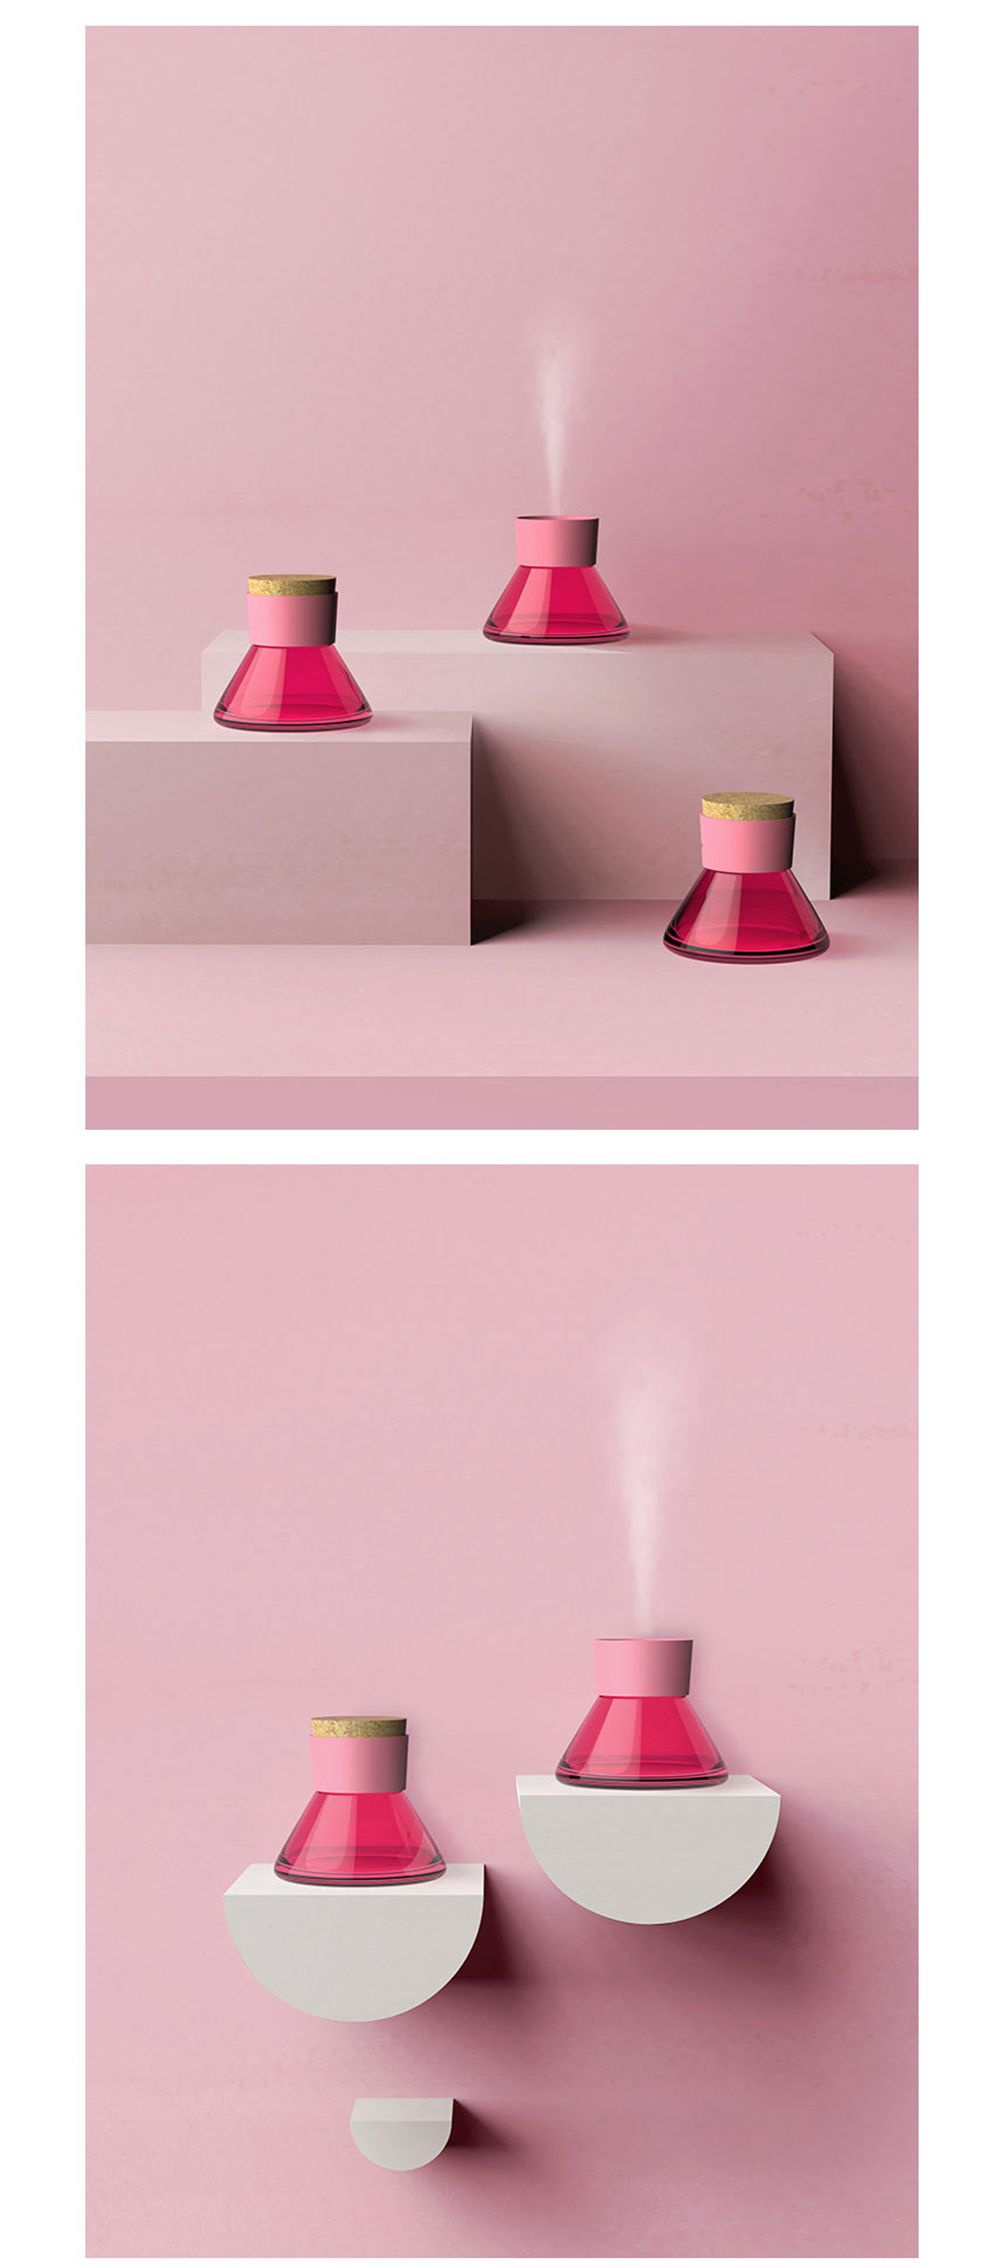 Aromatherapy Diffuser At Home Aromatherapy